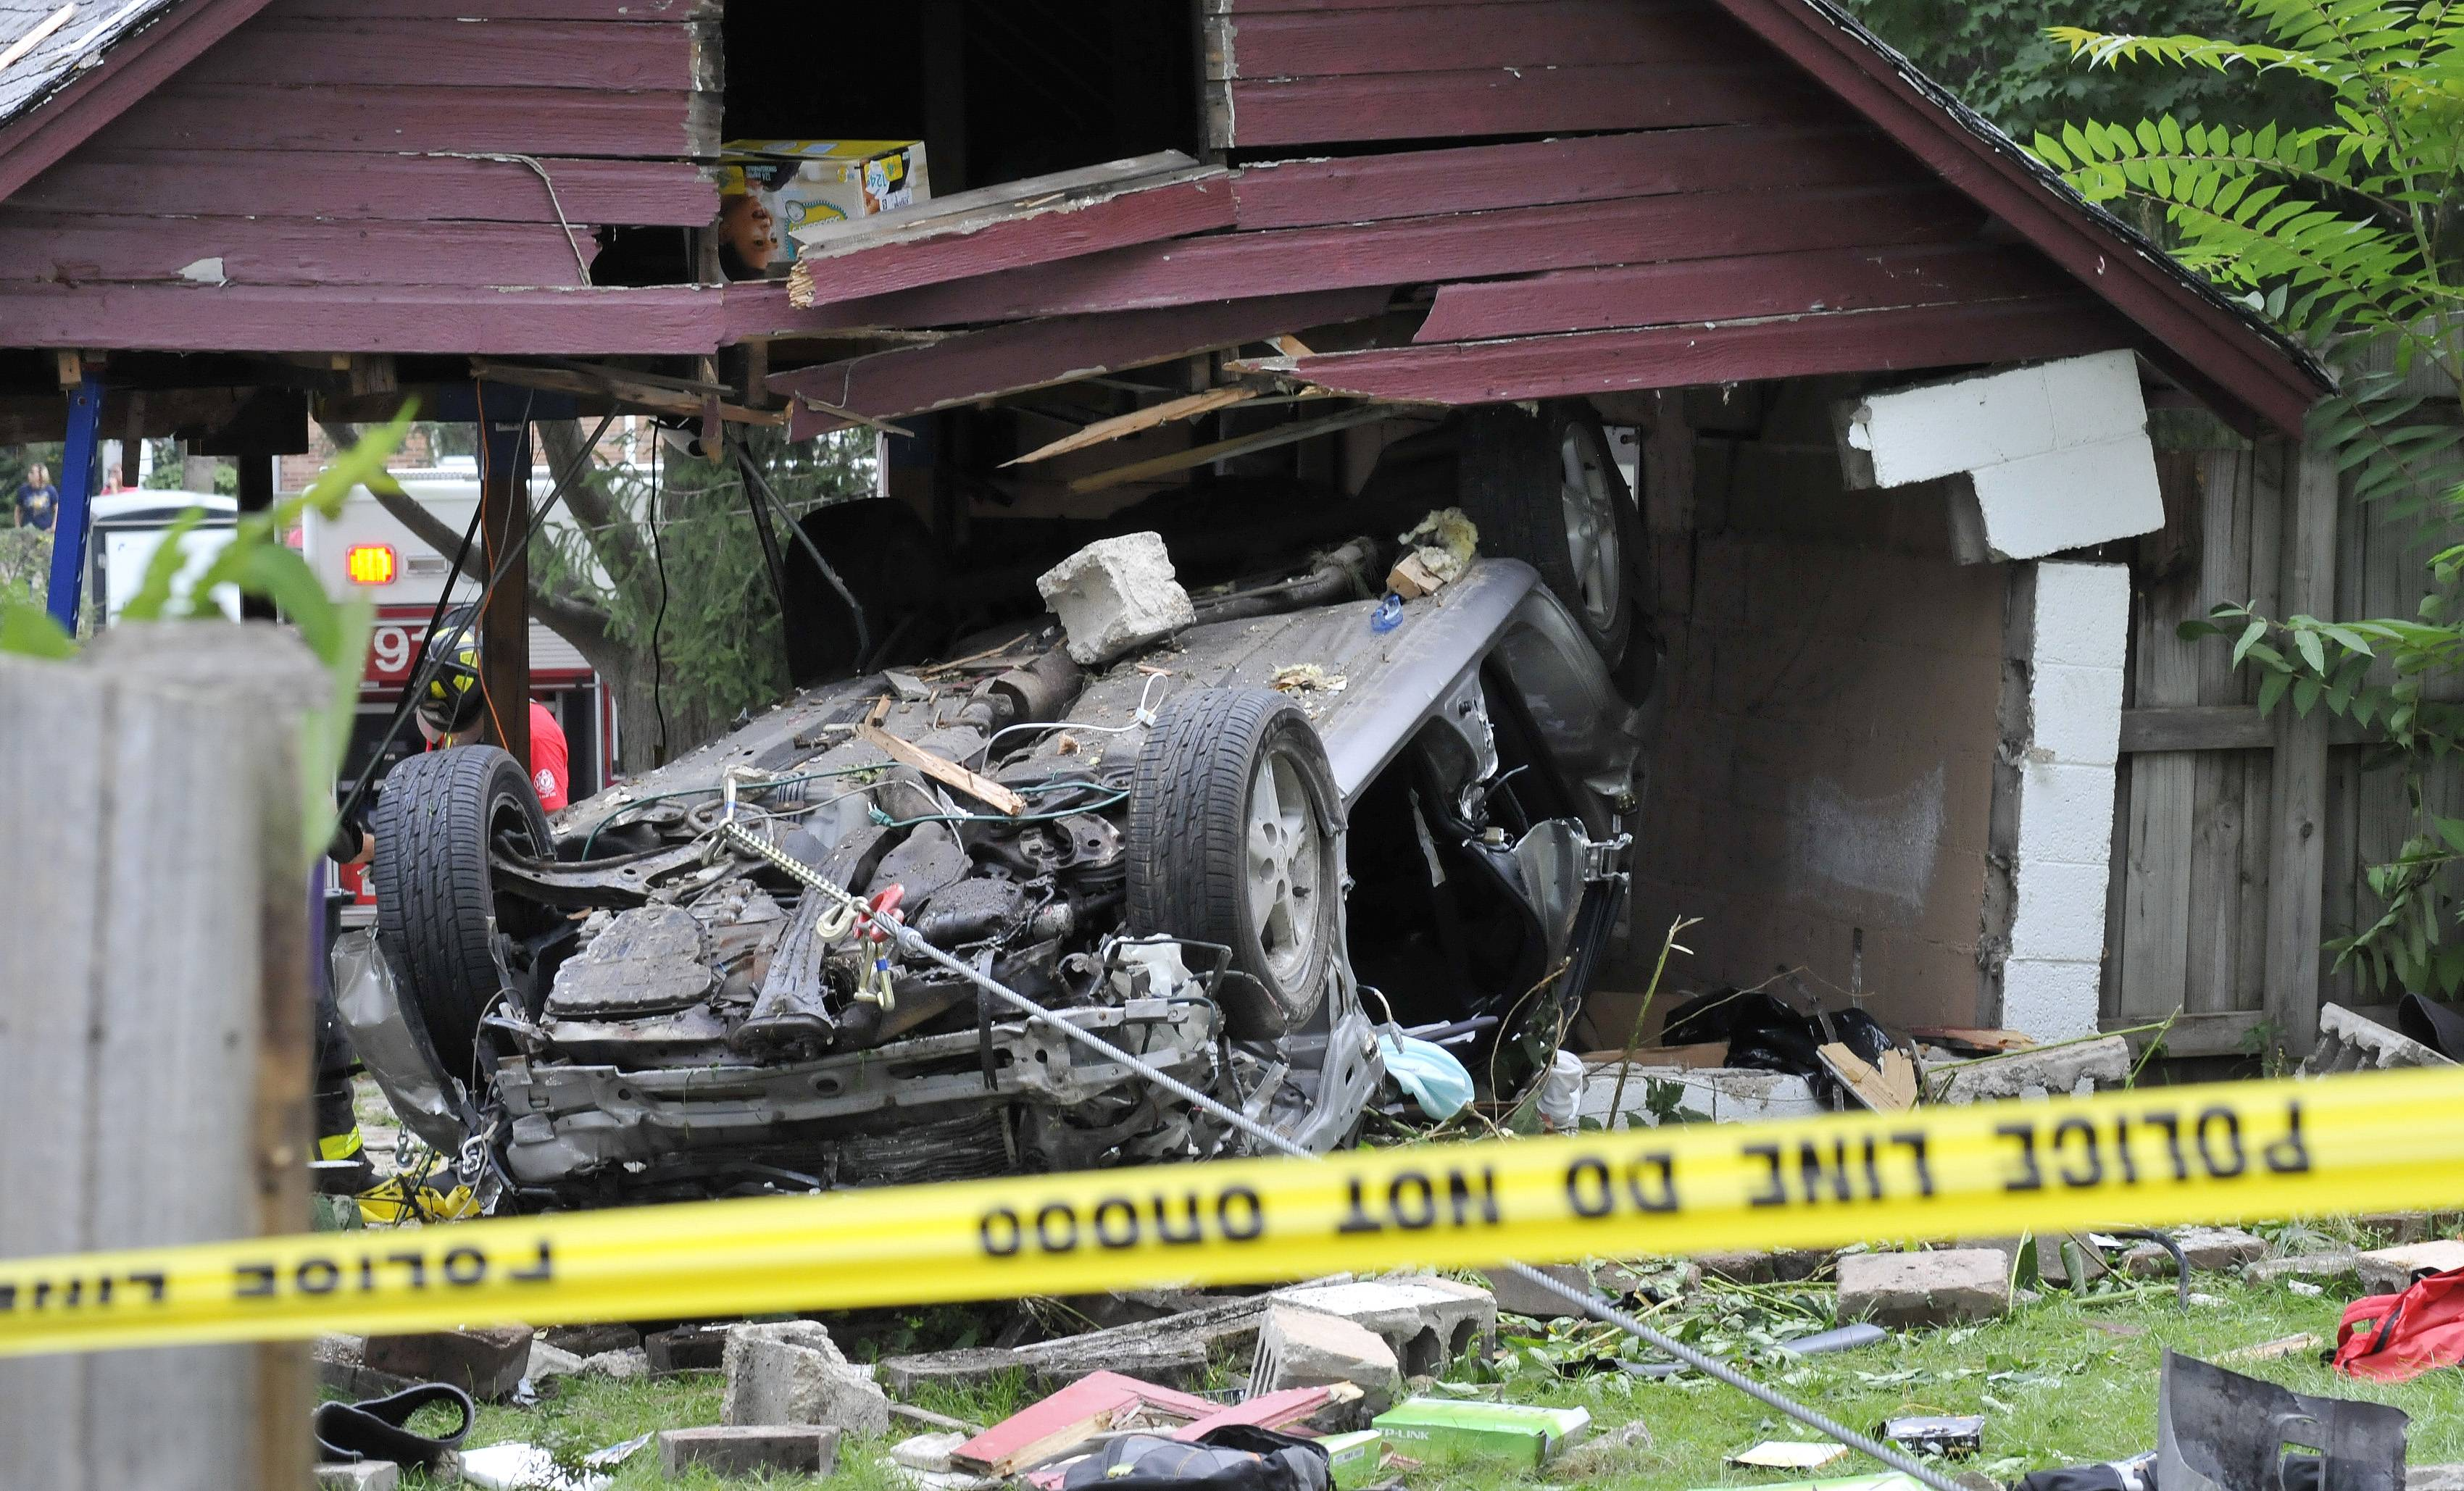 A car left the road Friday morning on the 400 block of Colford Avenue in West Chicago and struck a house and then plowed through a garage. The driver was taken by helicopter to Advocate Good Samaritan Hospital in Downers Grove.